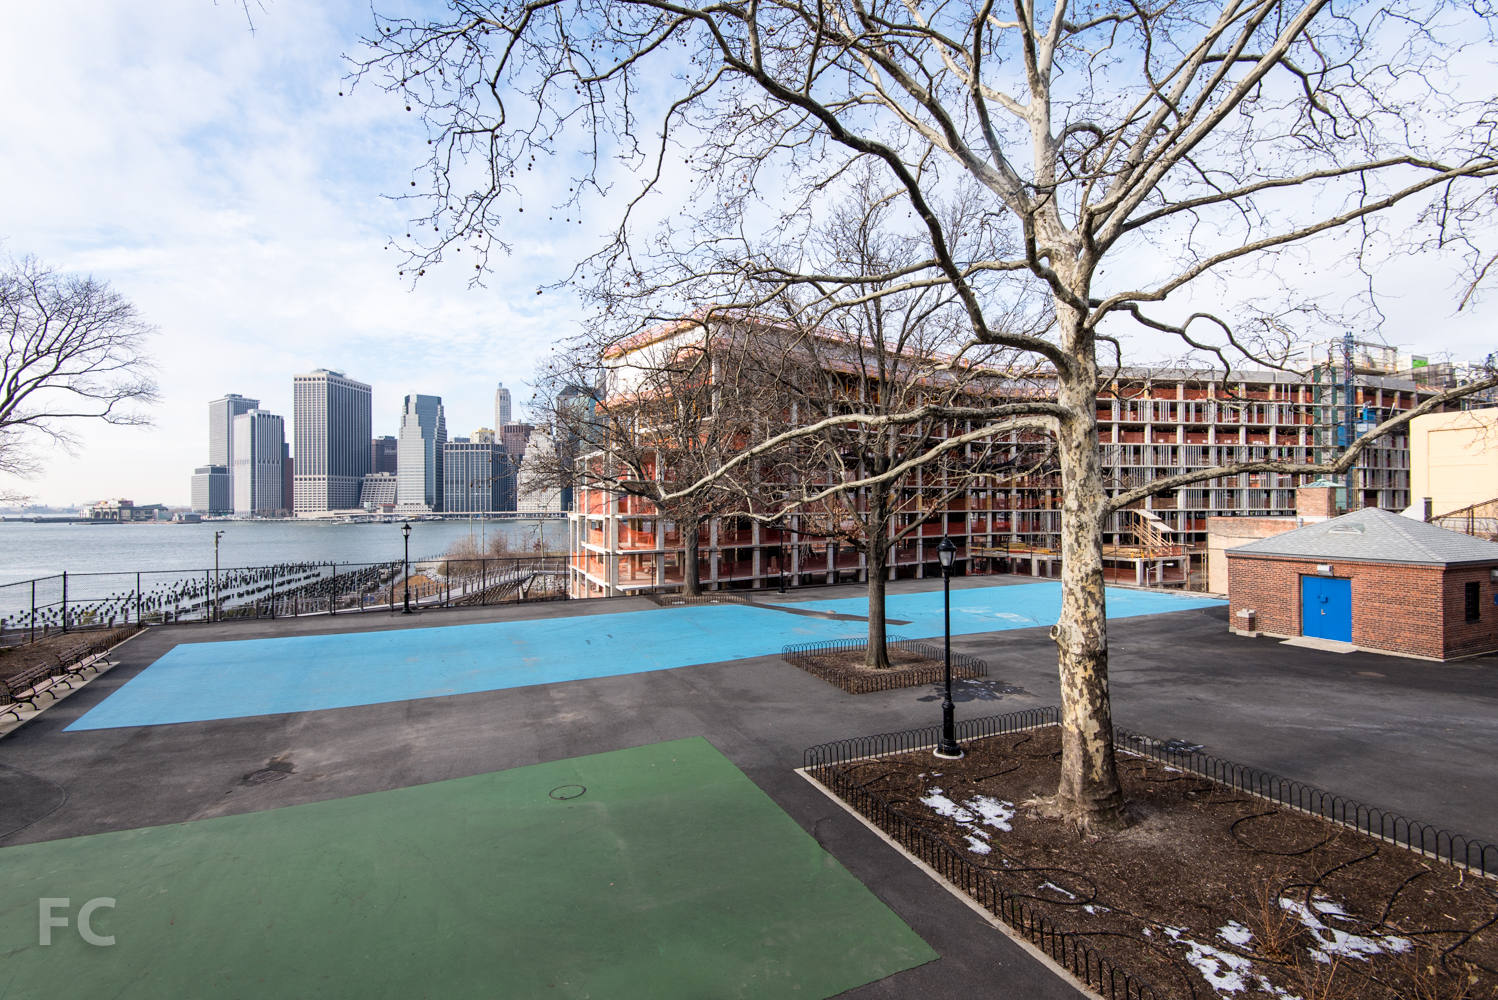 Looking west from Squibb Park towards  Pierhouse (foreground) and Lower Manhattan (background).